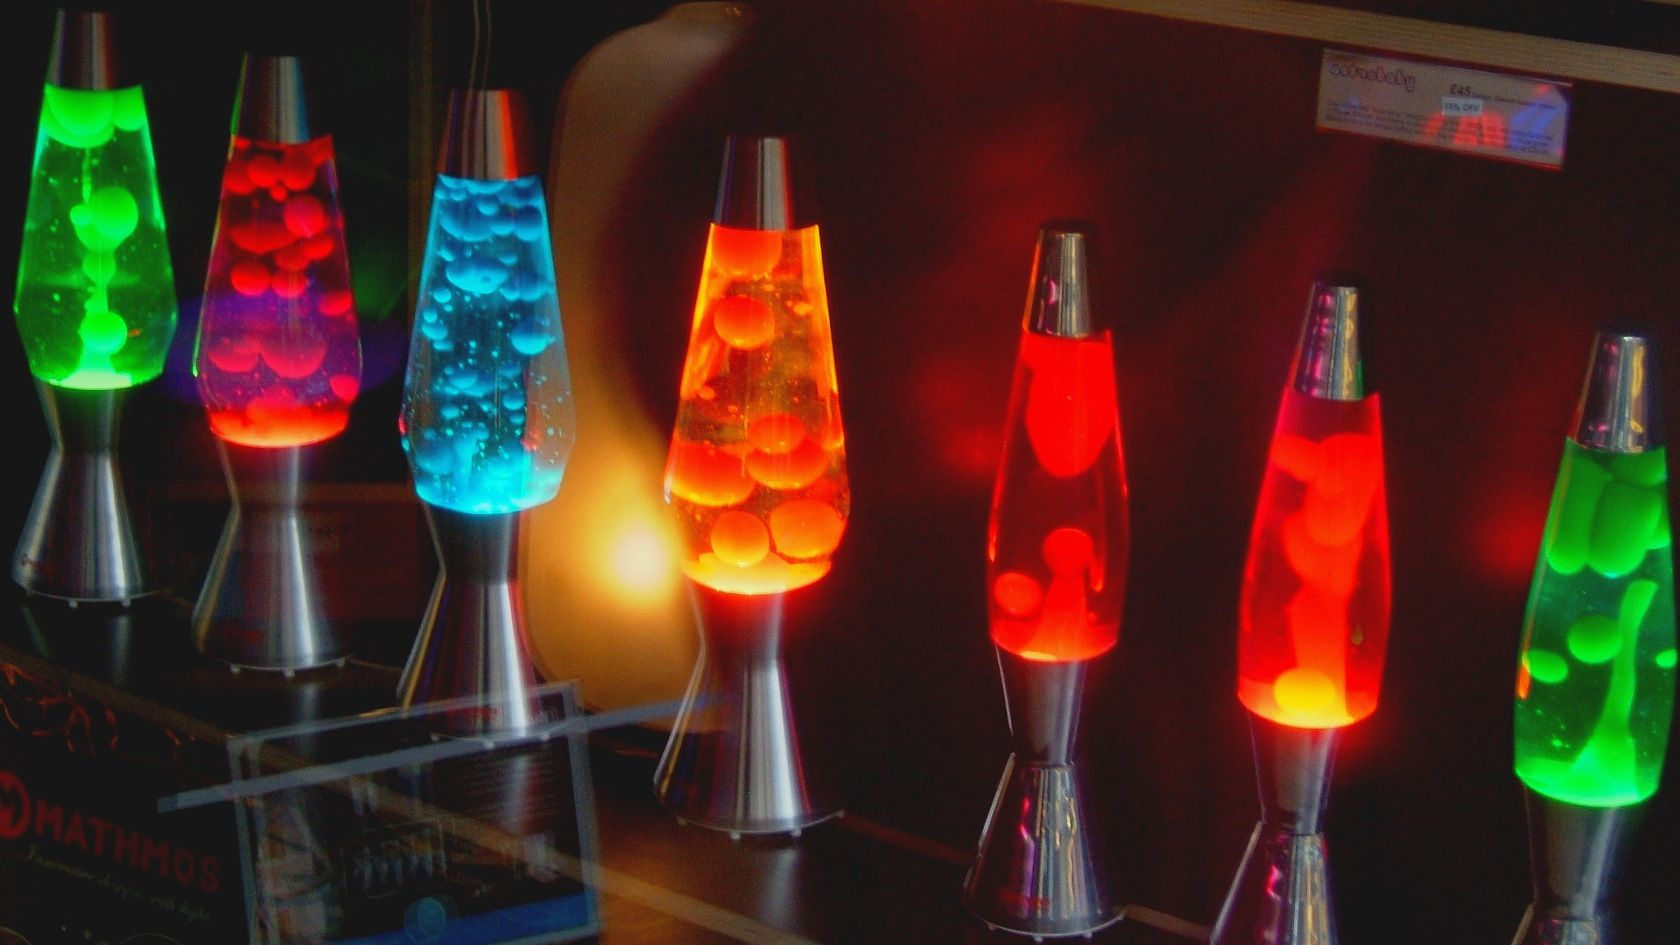 Pin by Luce de Palchi on psycedelic. | Pinterest | Lava lamp and Lava for Moving Lava Lamp Background  56mzq